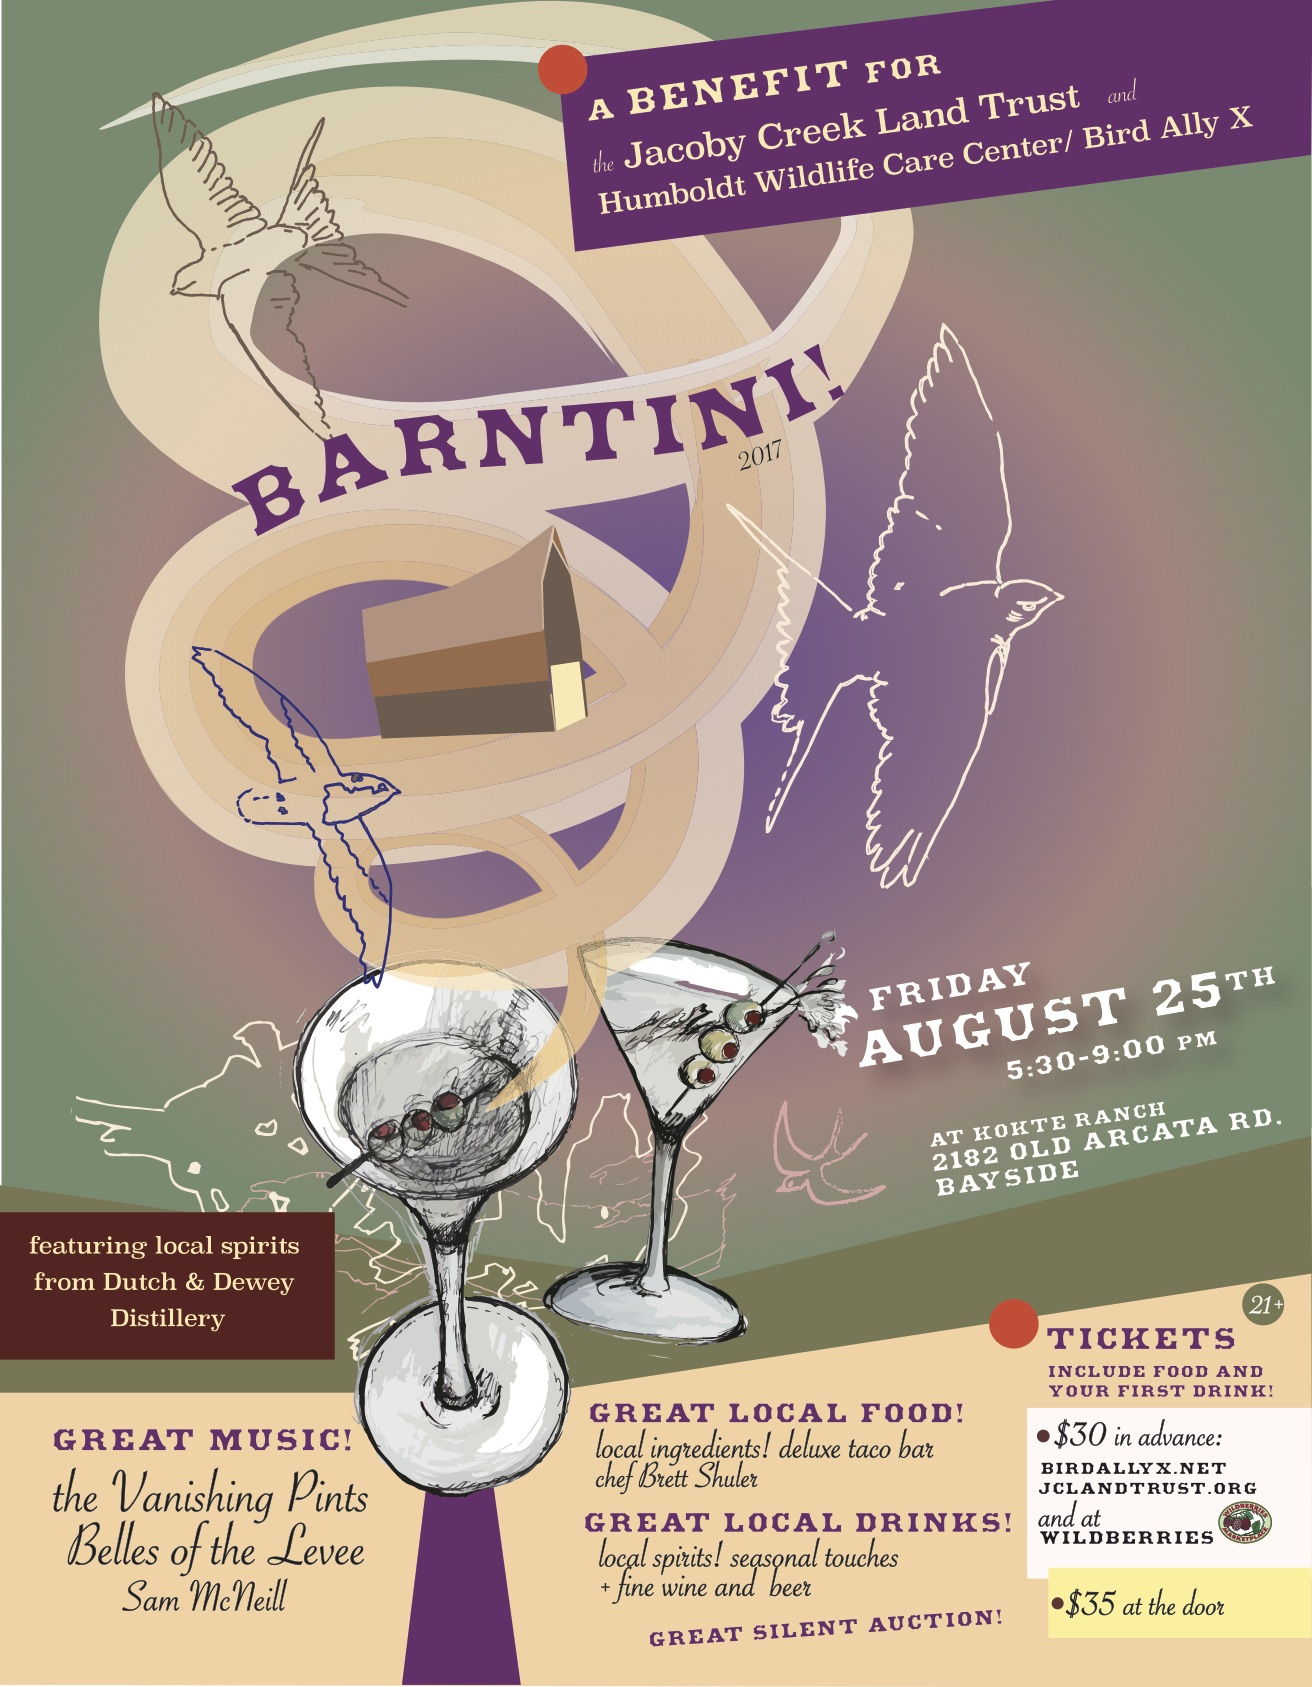 BARNTINI! the 4th annual fundraiser for Jacoby Creek Land